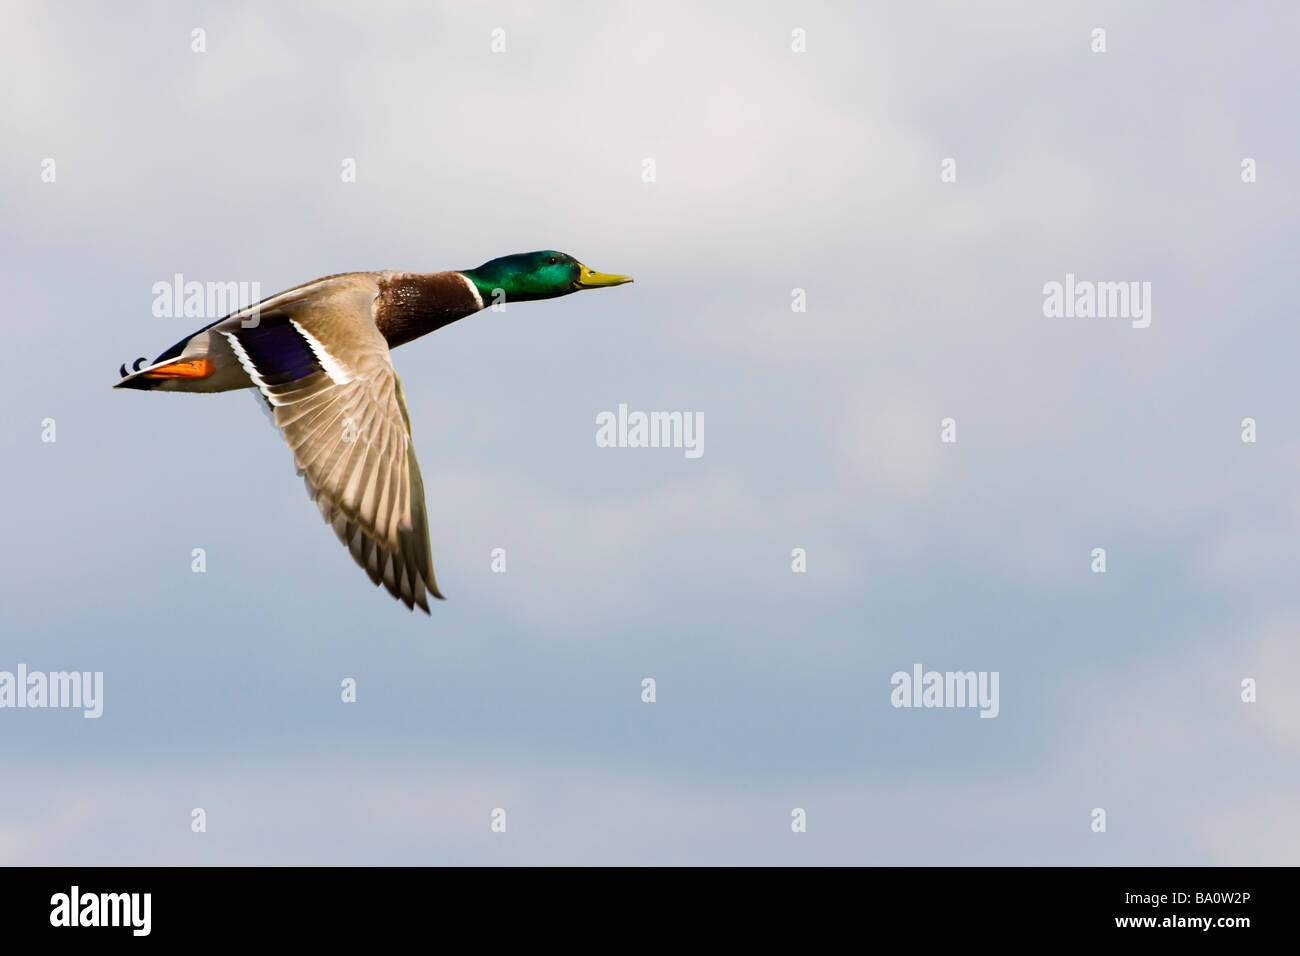 Flying male mallard duck against a blue sky, England, UK - Stock Image